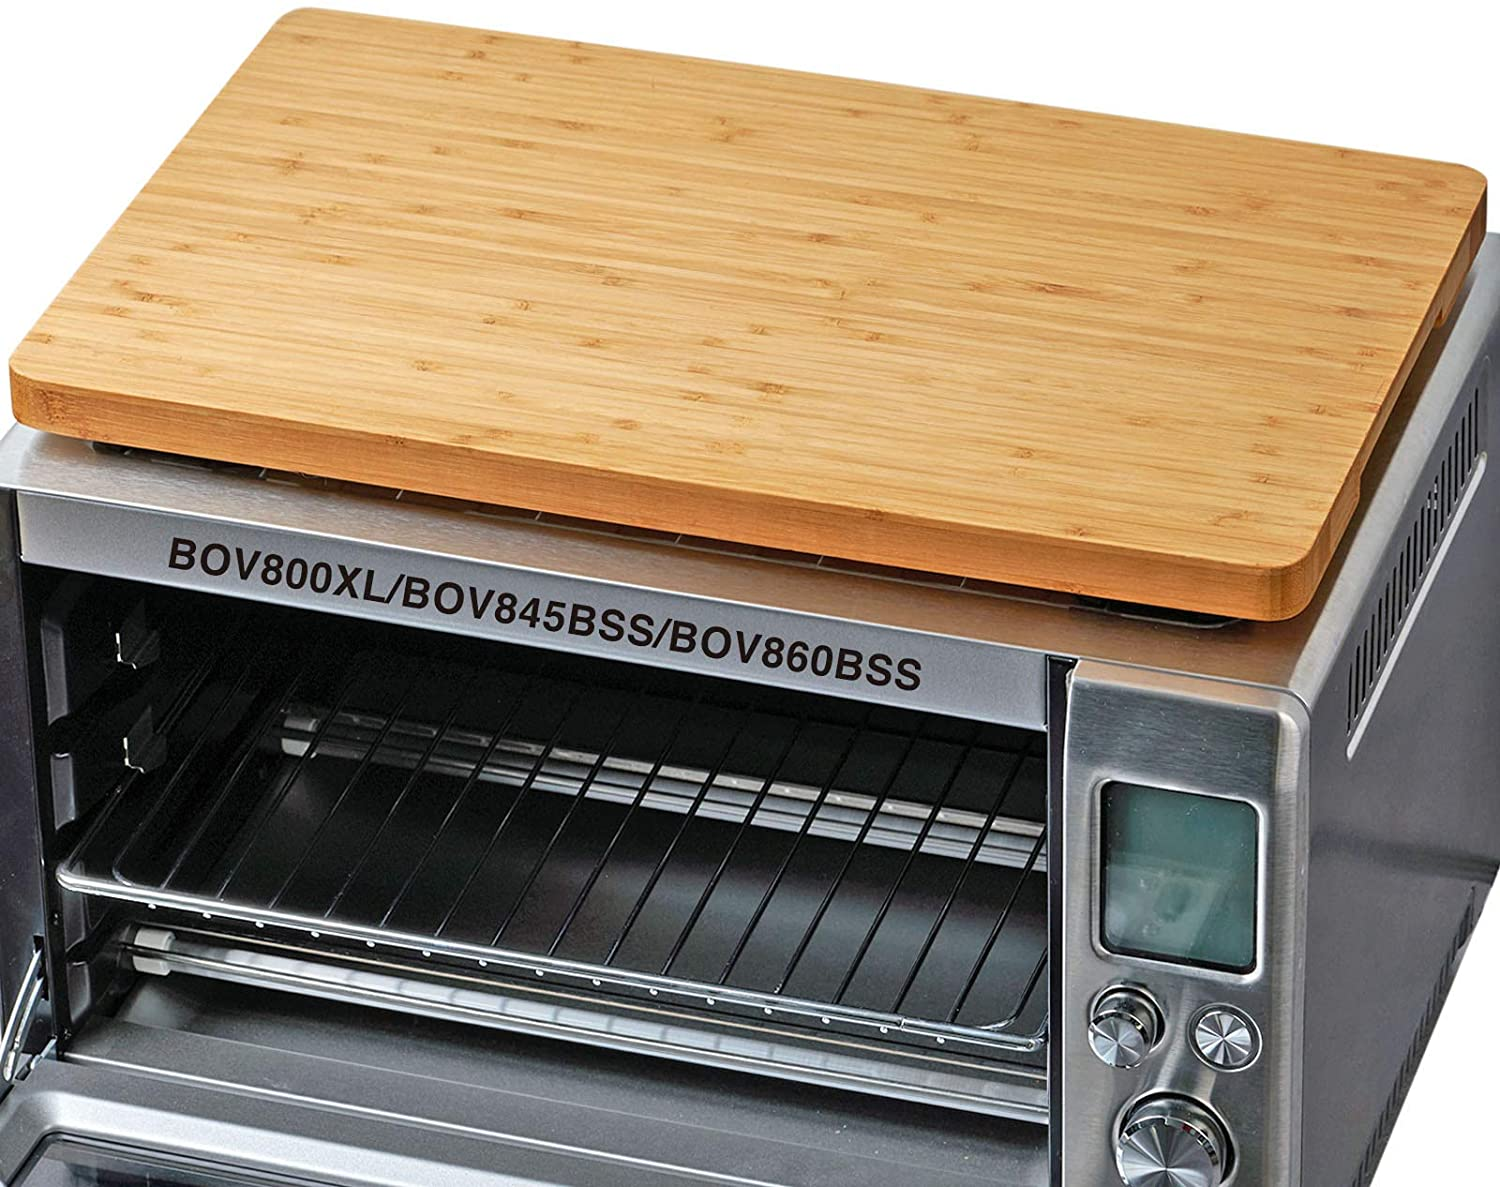 Umilife Cutting Board for Toaster Oven on an oven